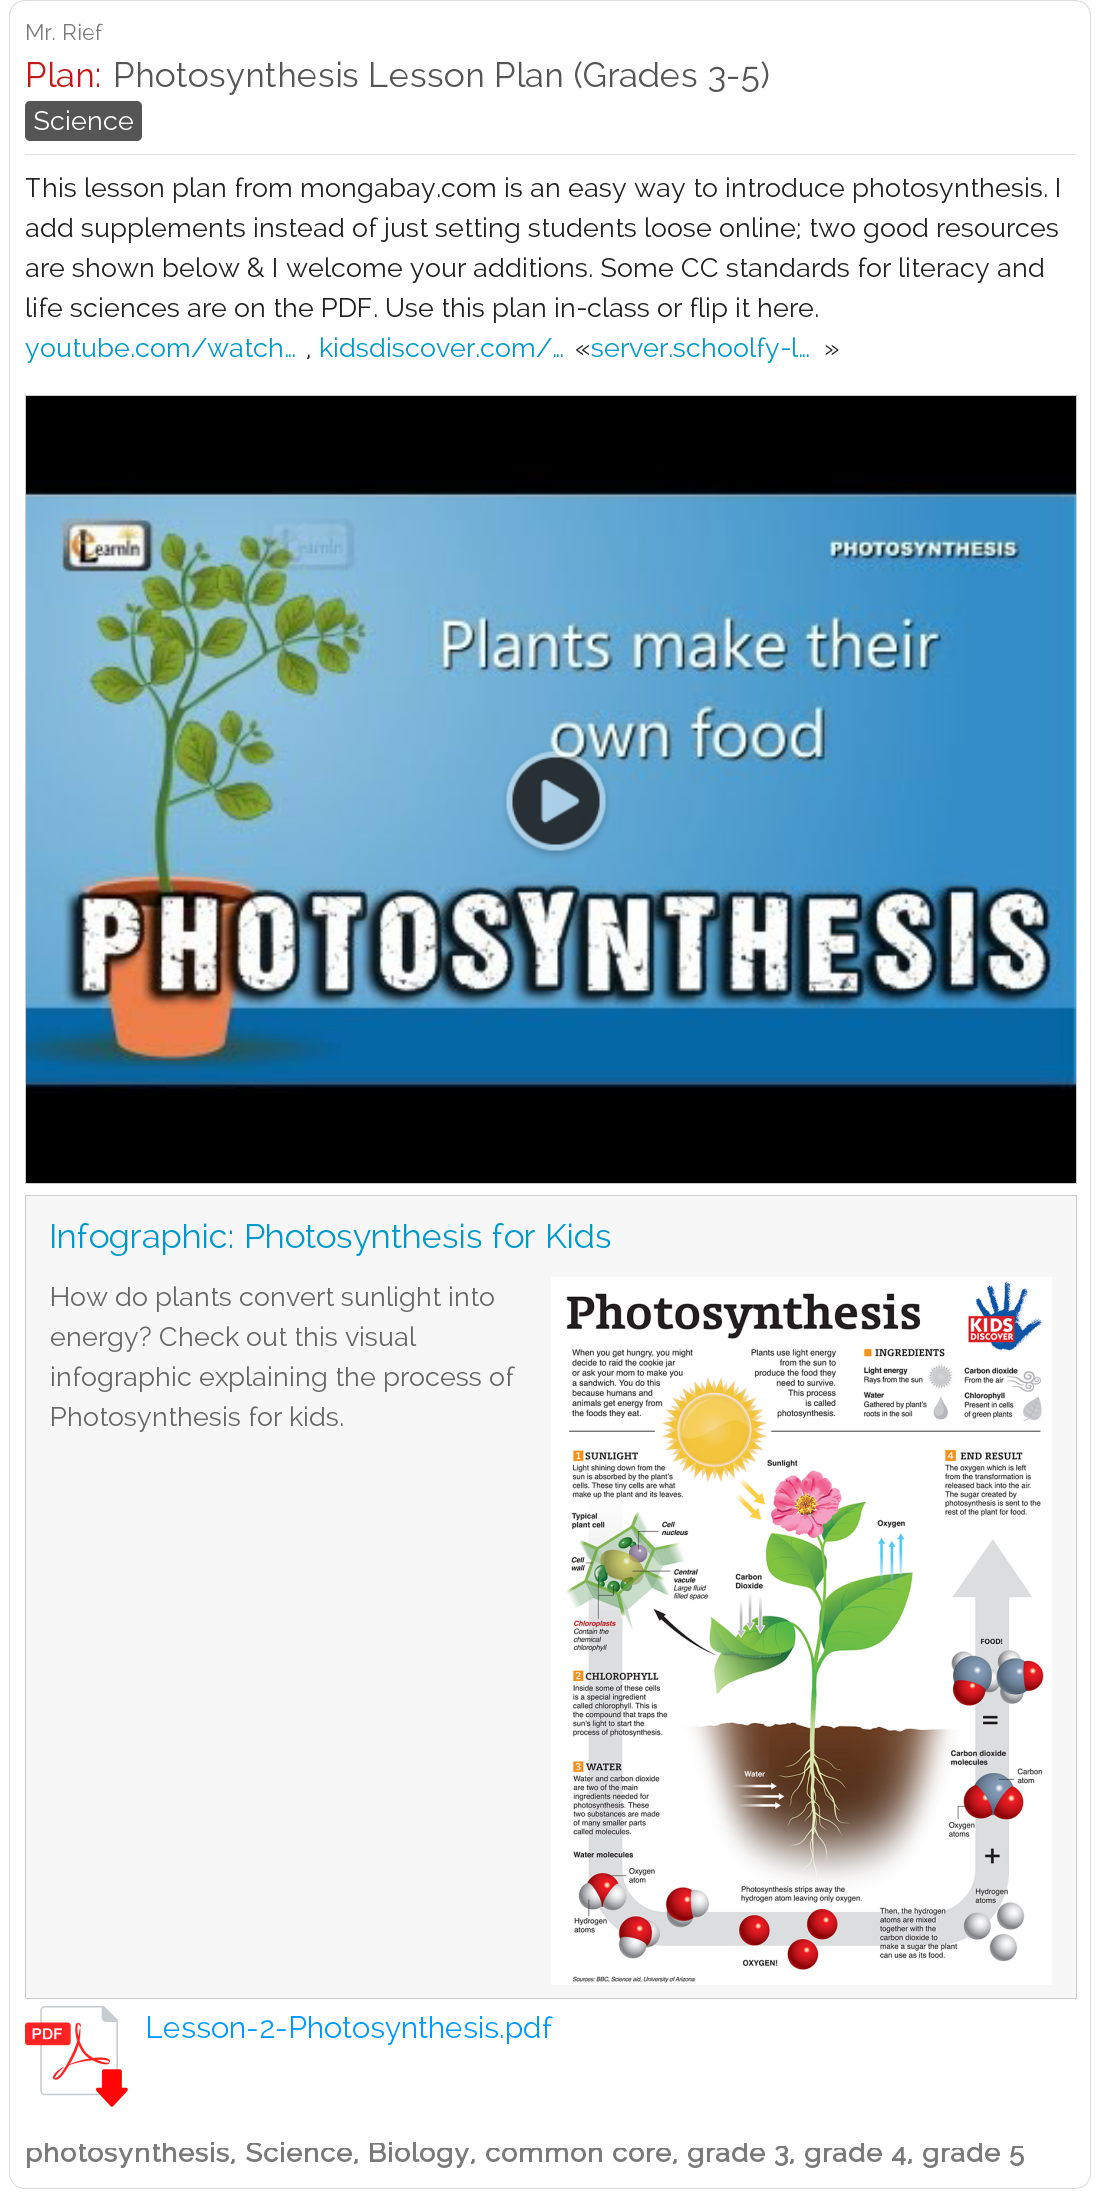 Free Photosynthesis Lesson Plan (Grades 3, 4, 5) - Video and PDF ...